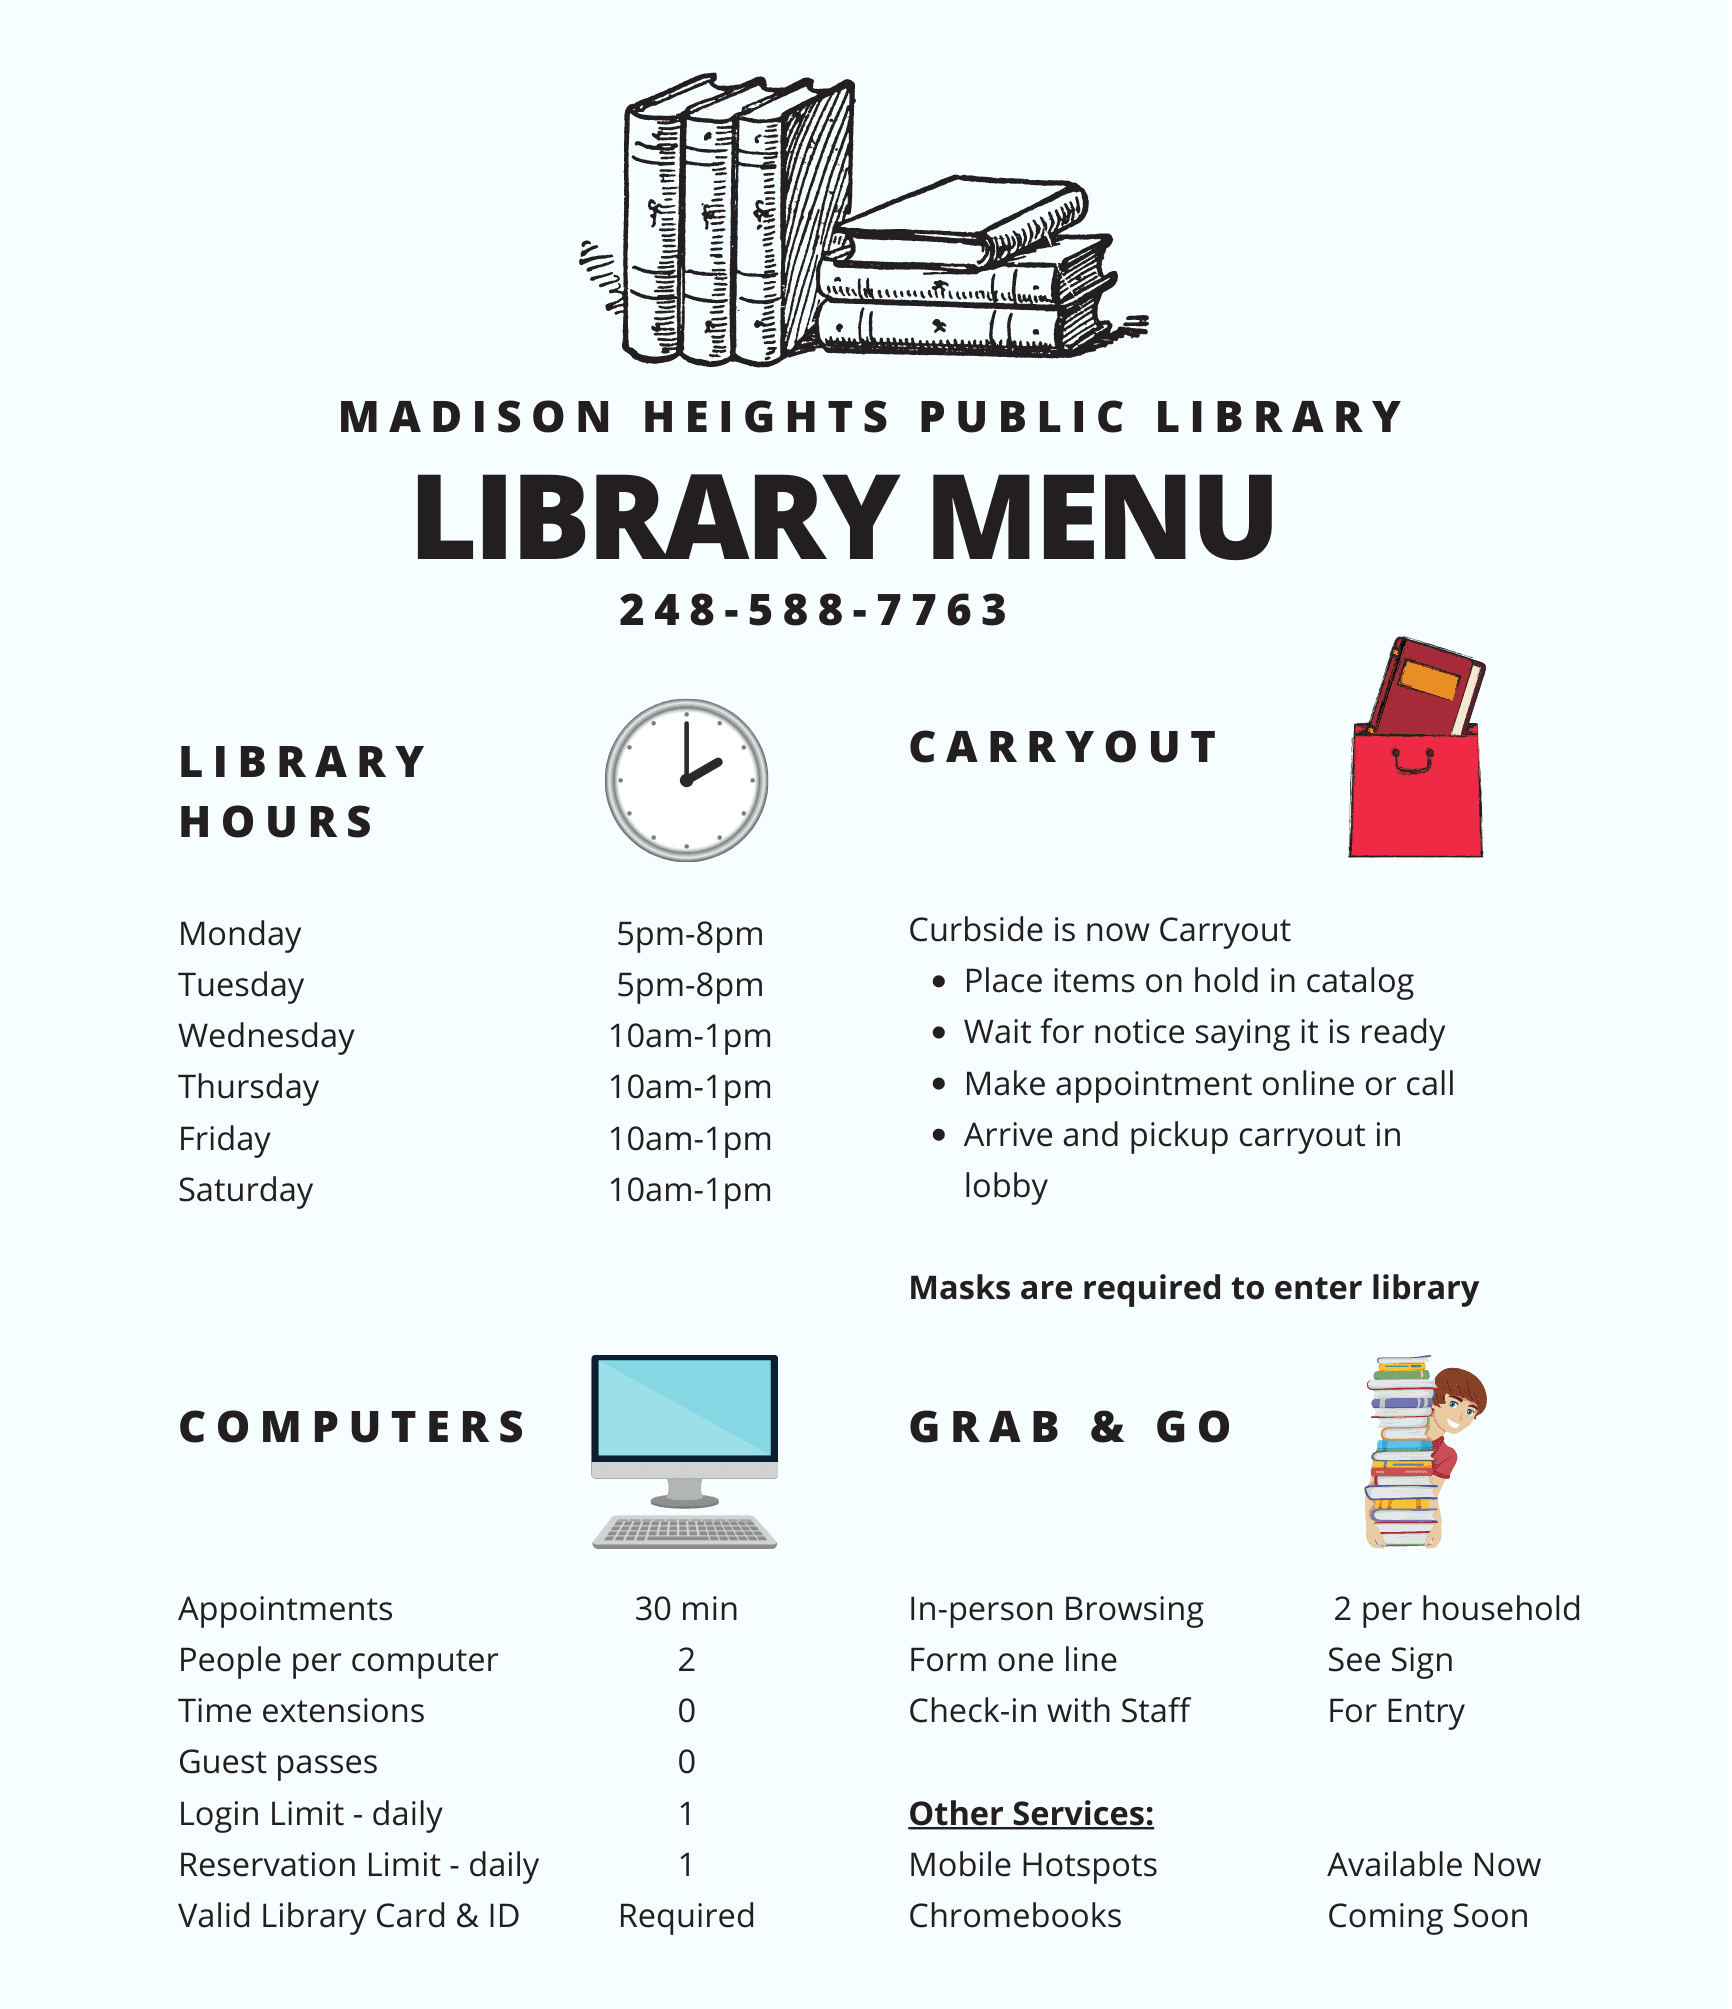 Madison Heights Library Menu of Library Services